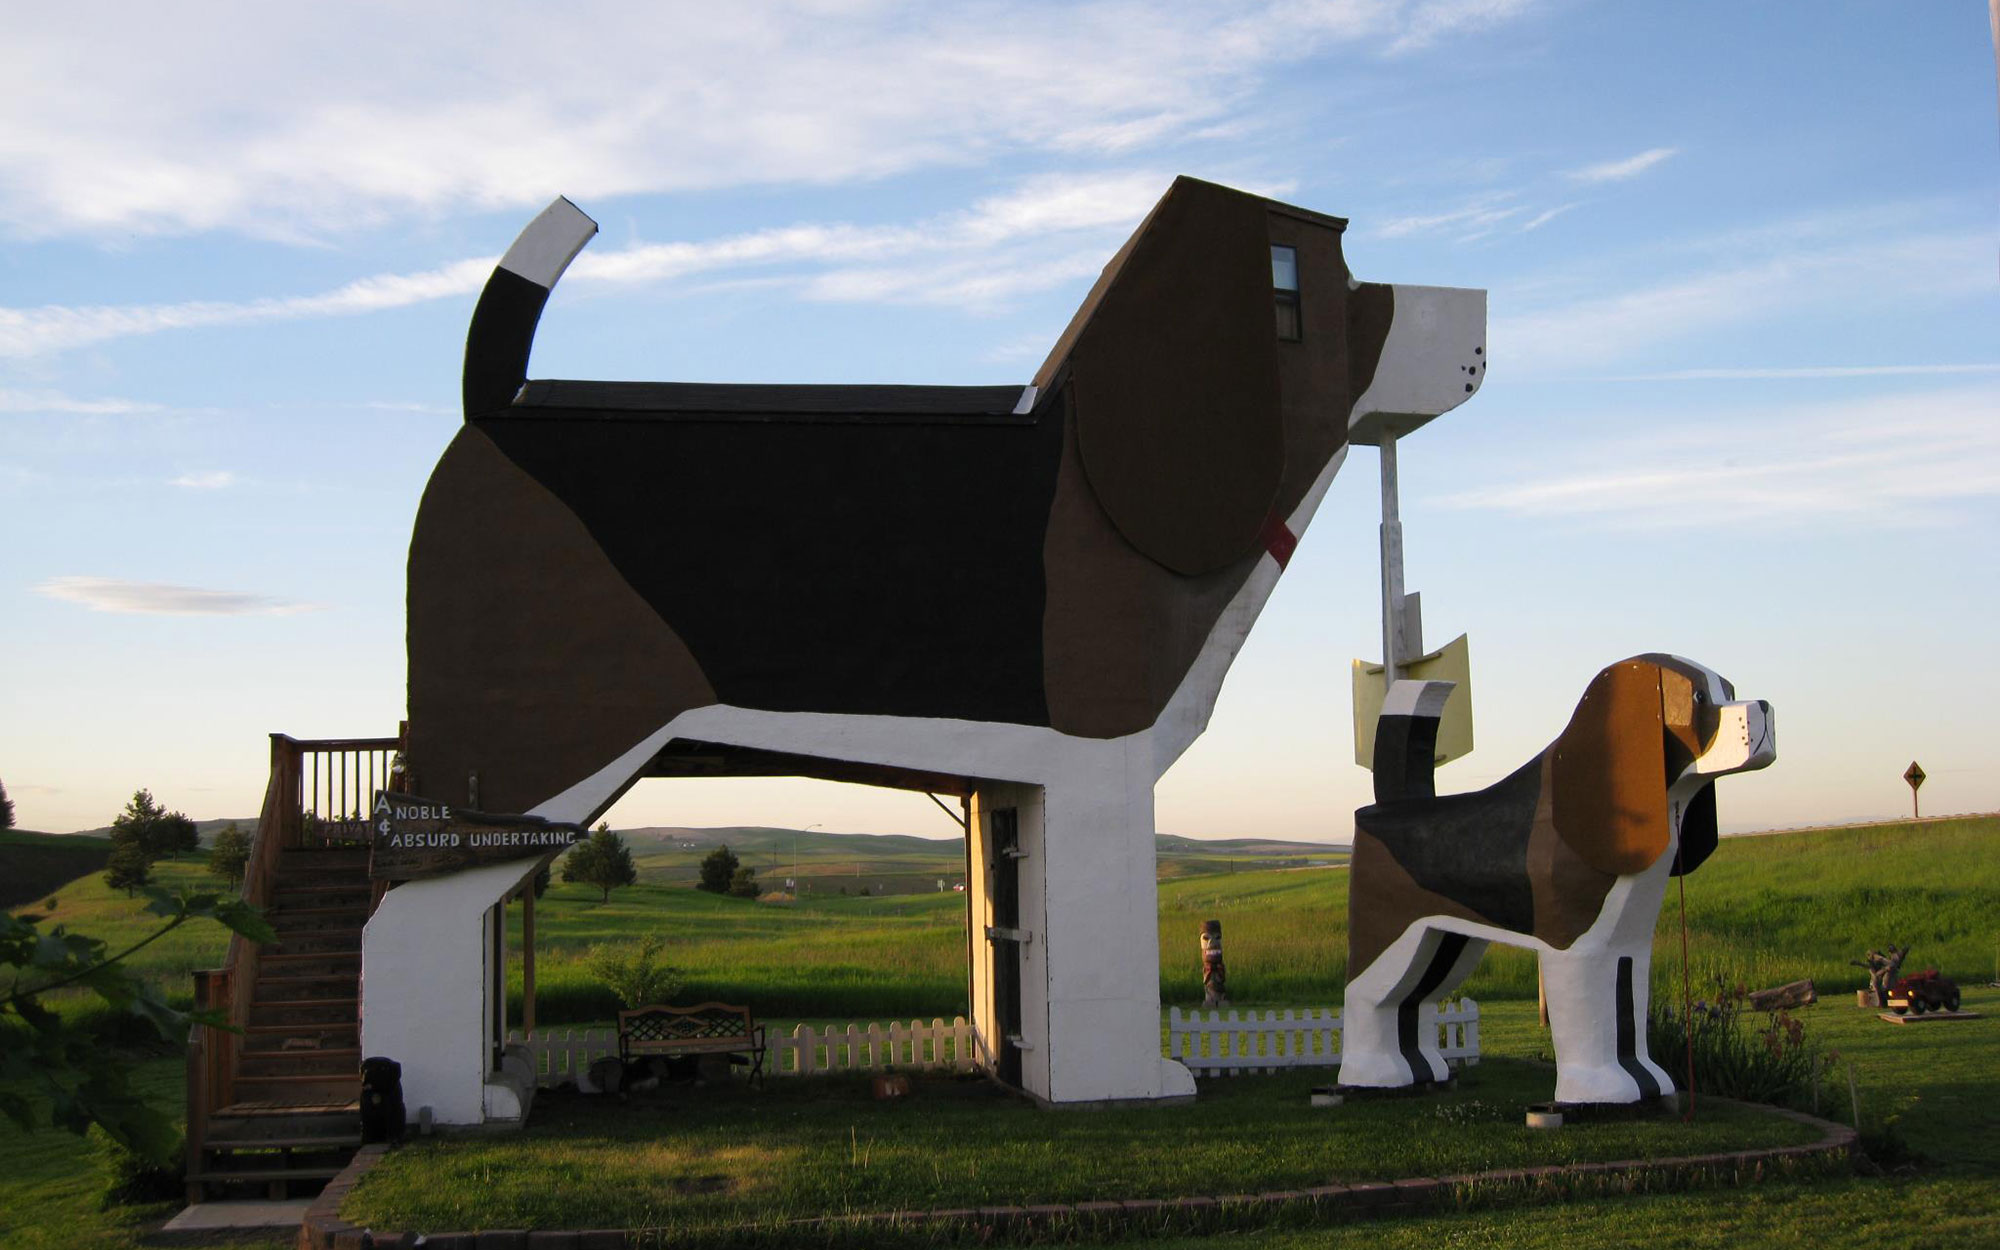 Weirdest Roadside Attractions: Idaho: World's Biggest Beagle (Dog Bark Park Inn)